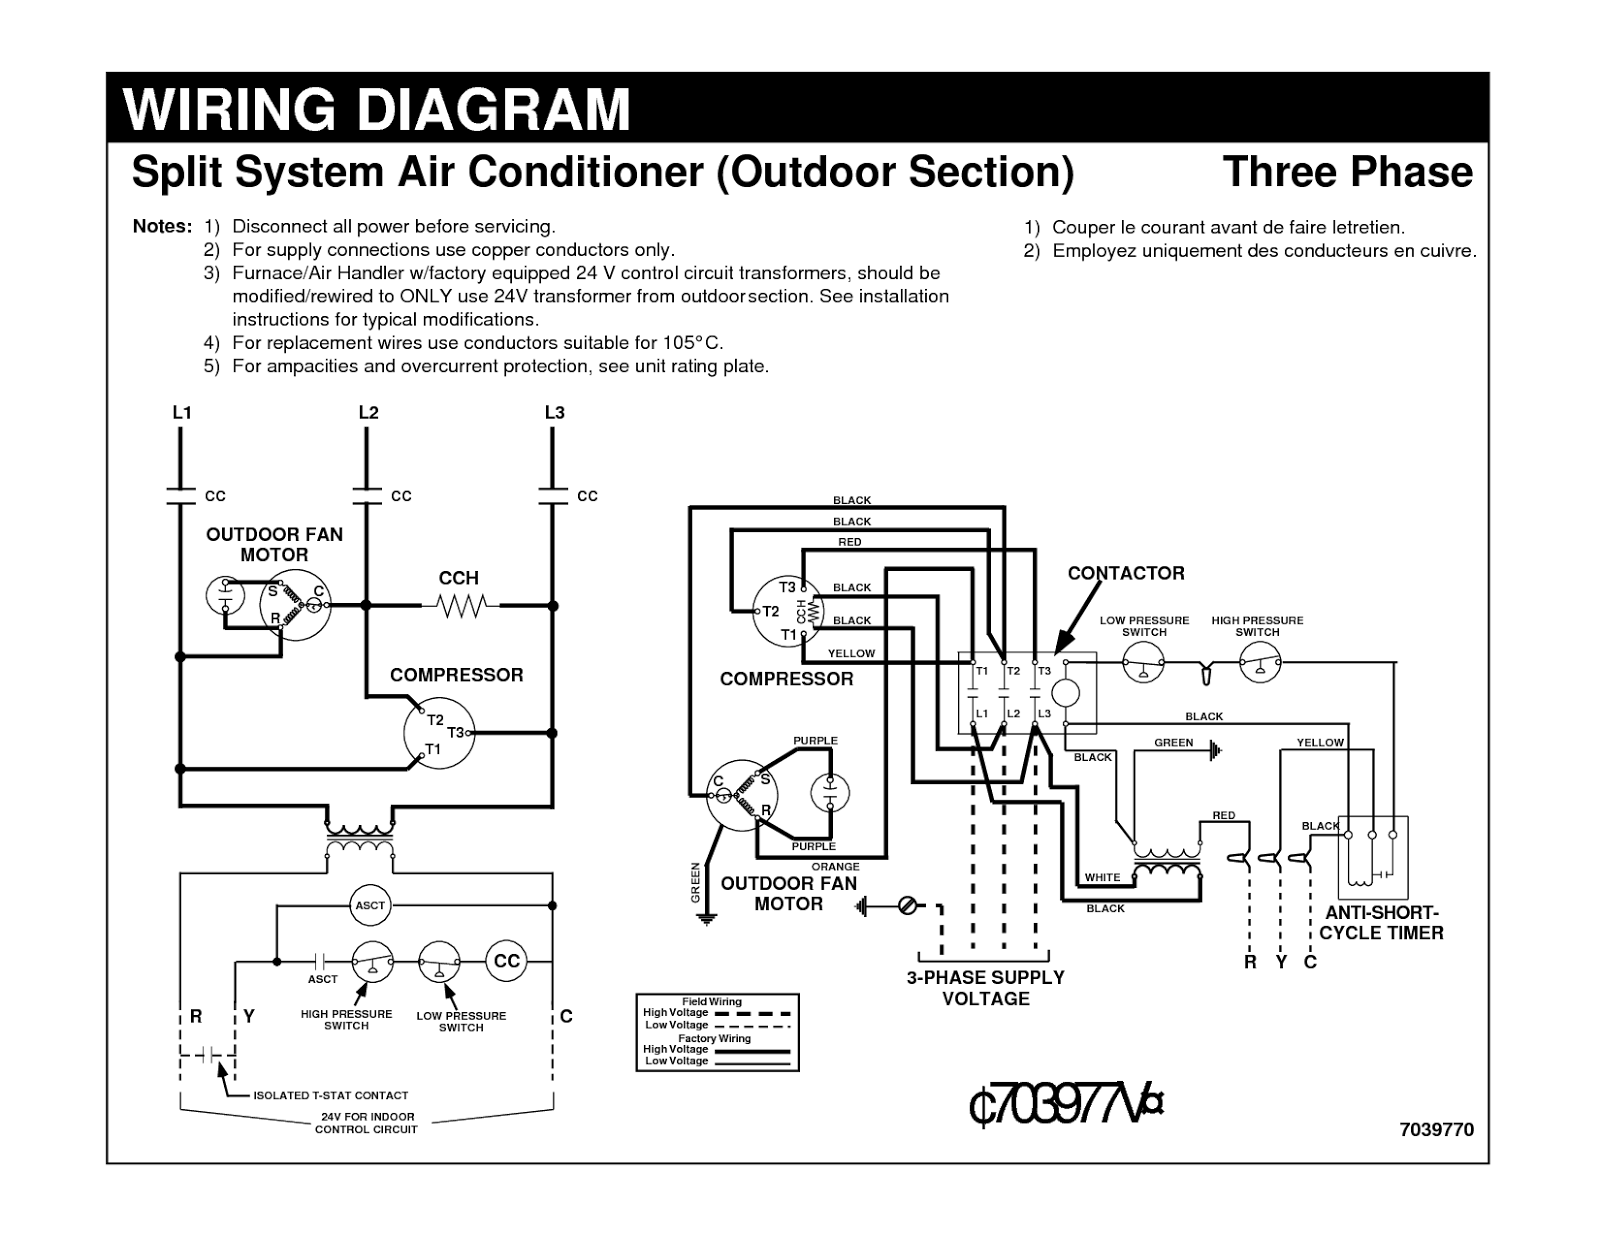 wiring+diagram+in+the+user+manual how to read hvac wiring diagrams 2013 subaru sti ecu wiring hvac wiring schematic symbols at honlapkeszites.co